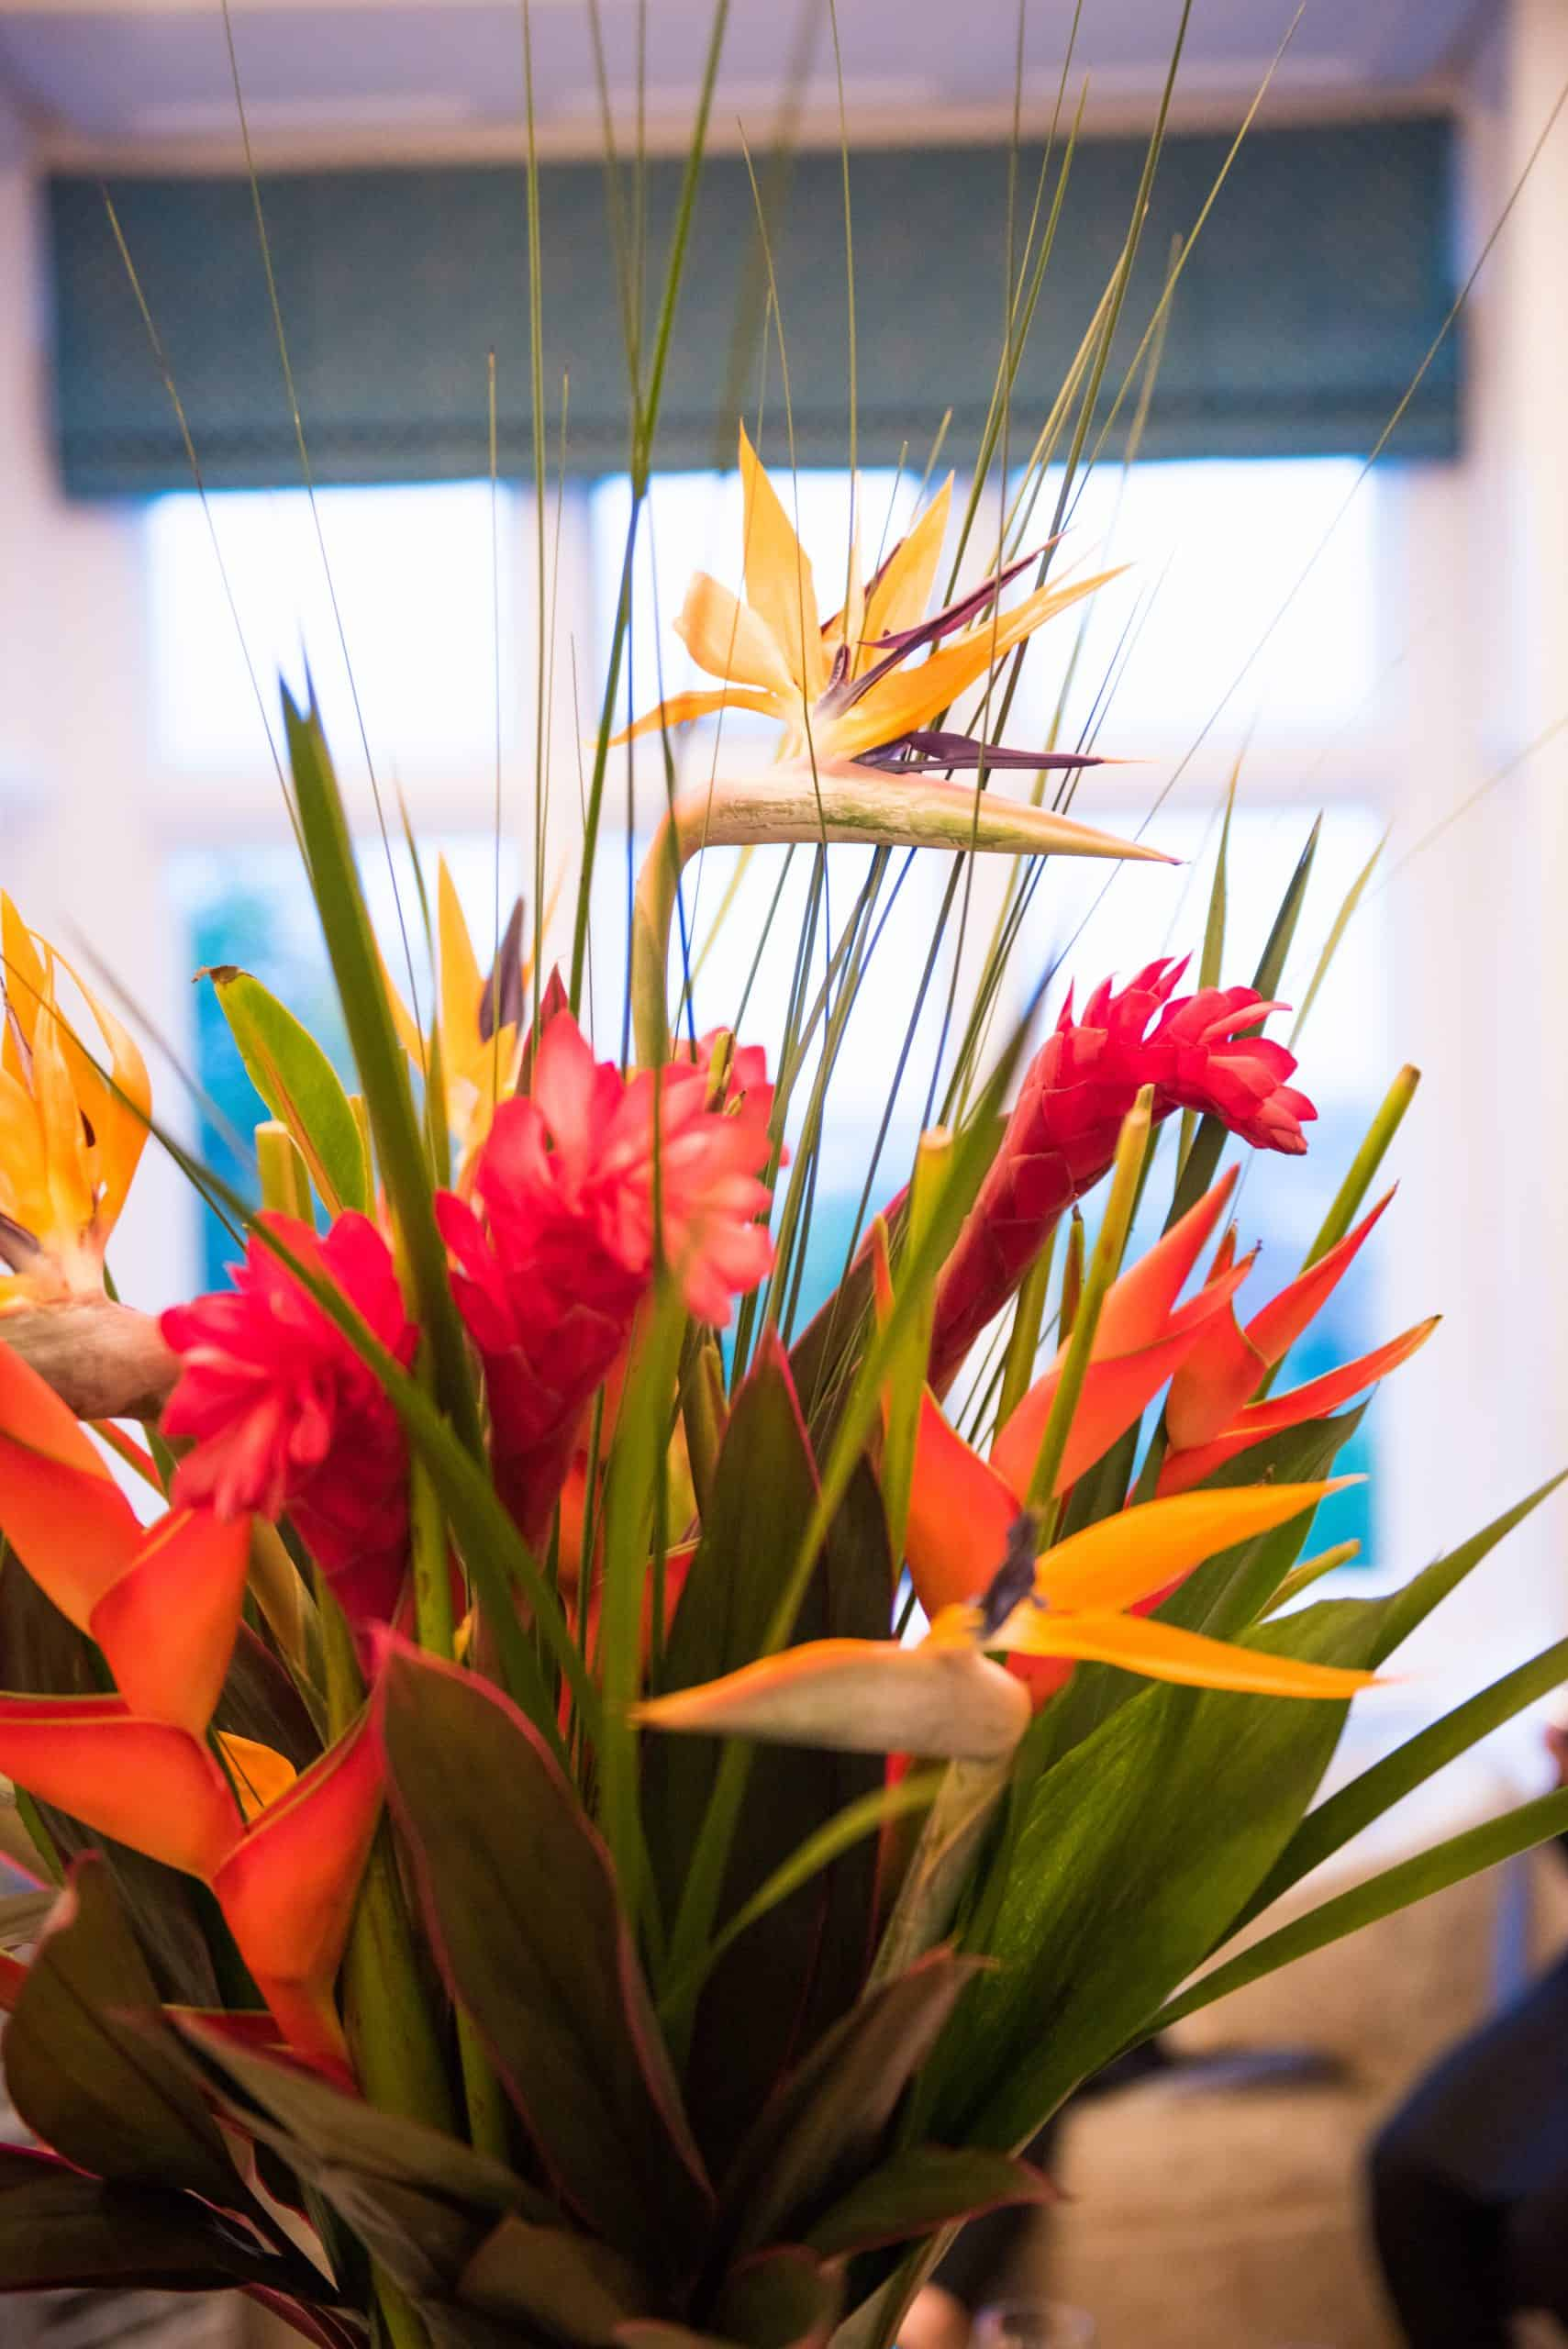 Tropical flower centrepiece at private party at home event planning by Alastair Currie Events